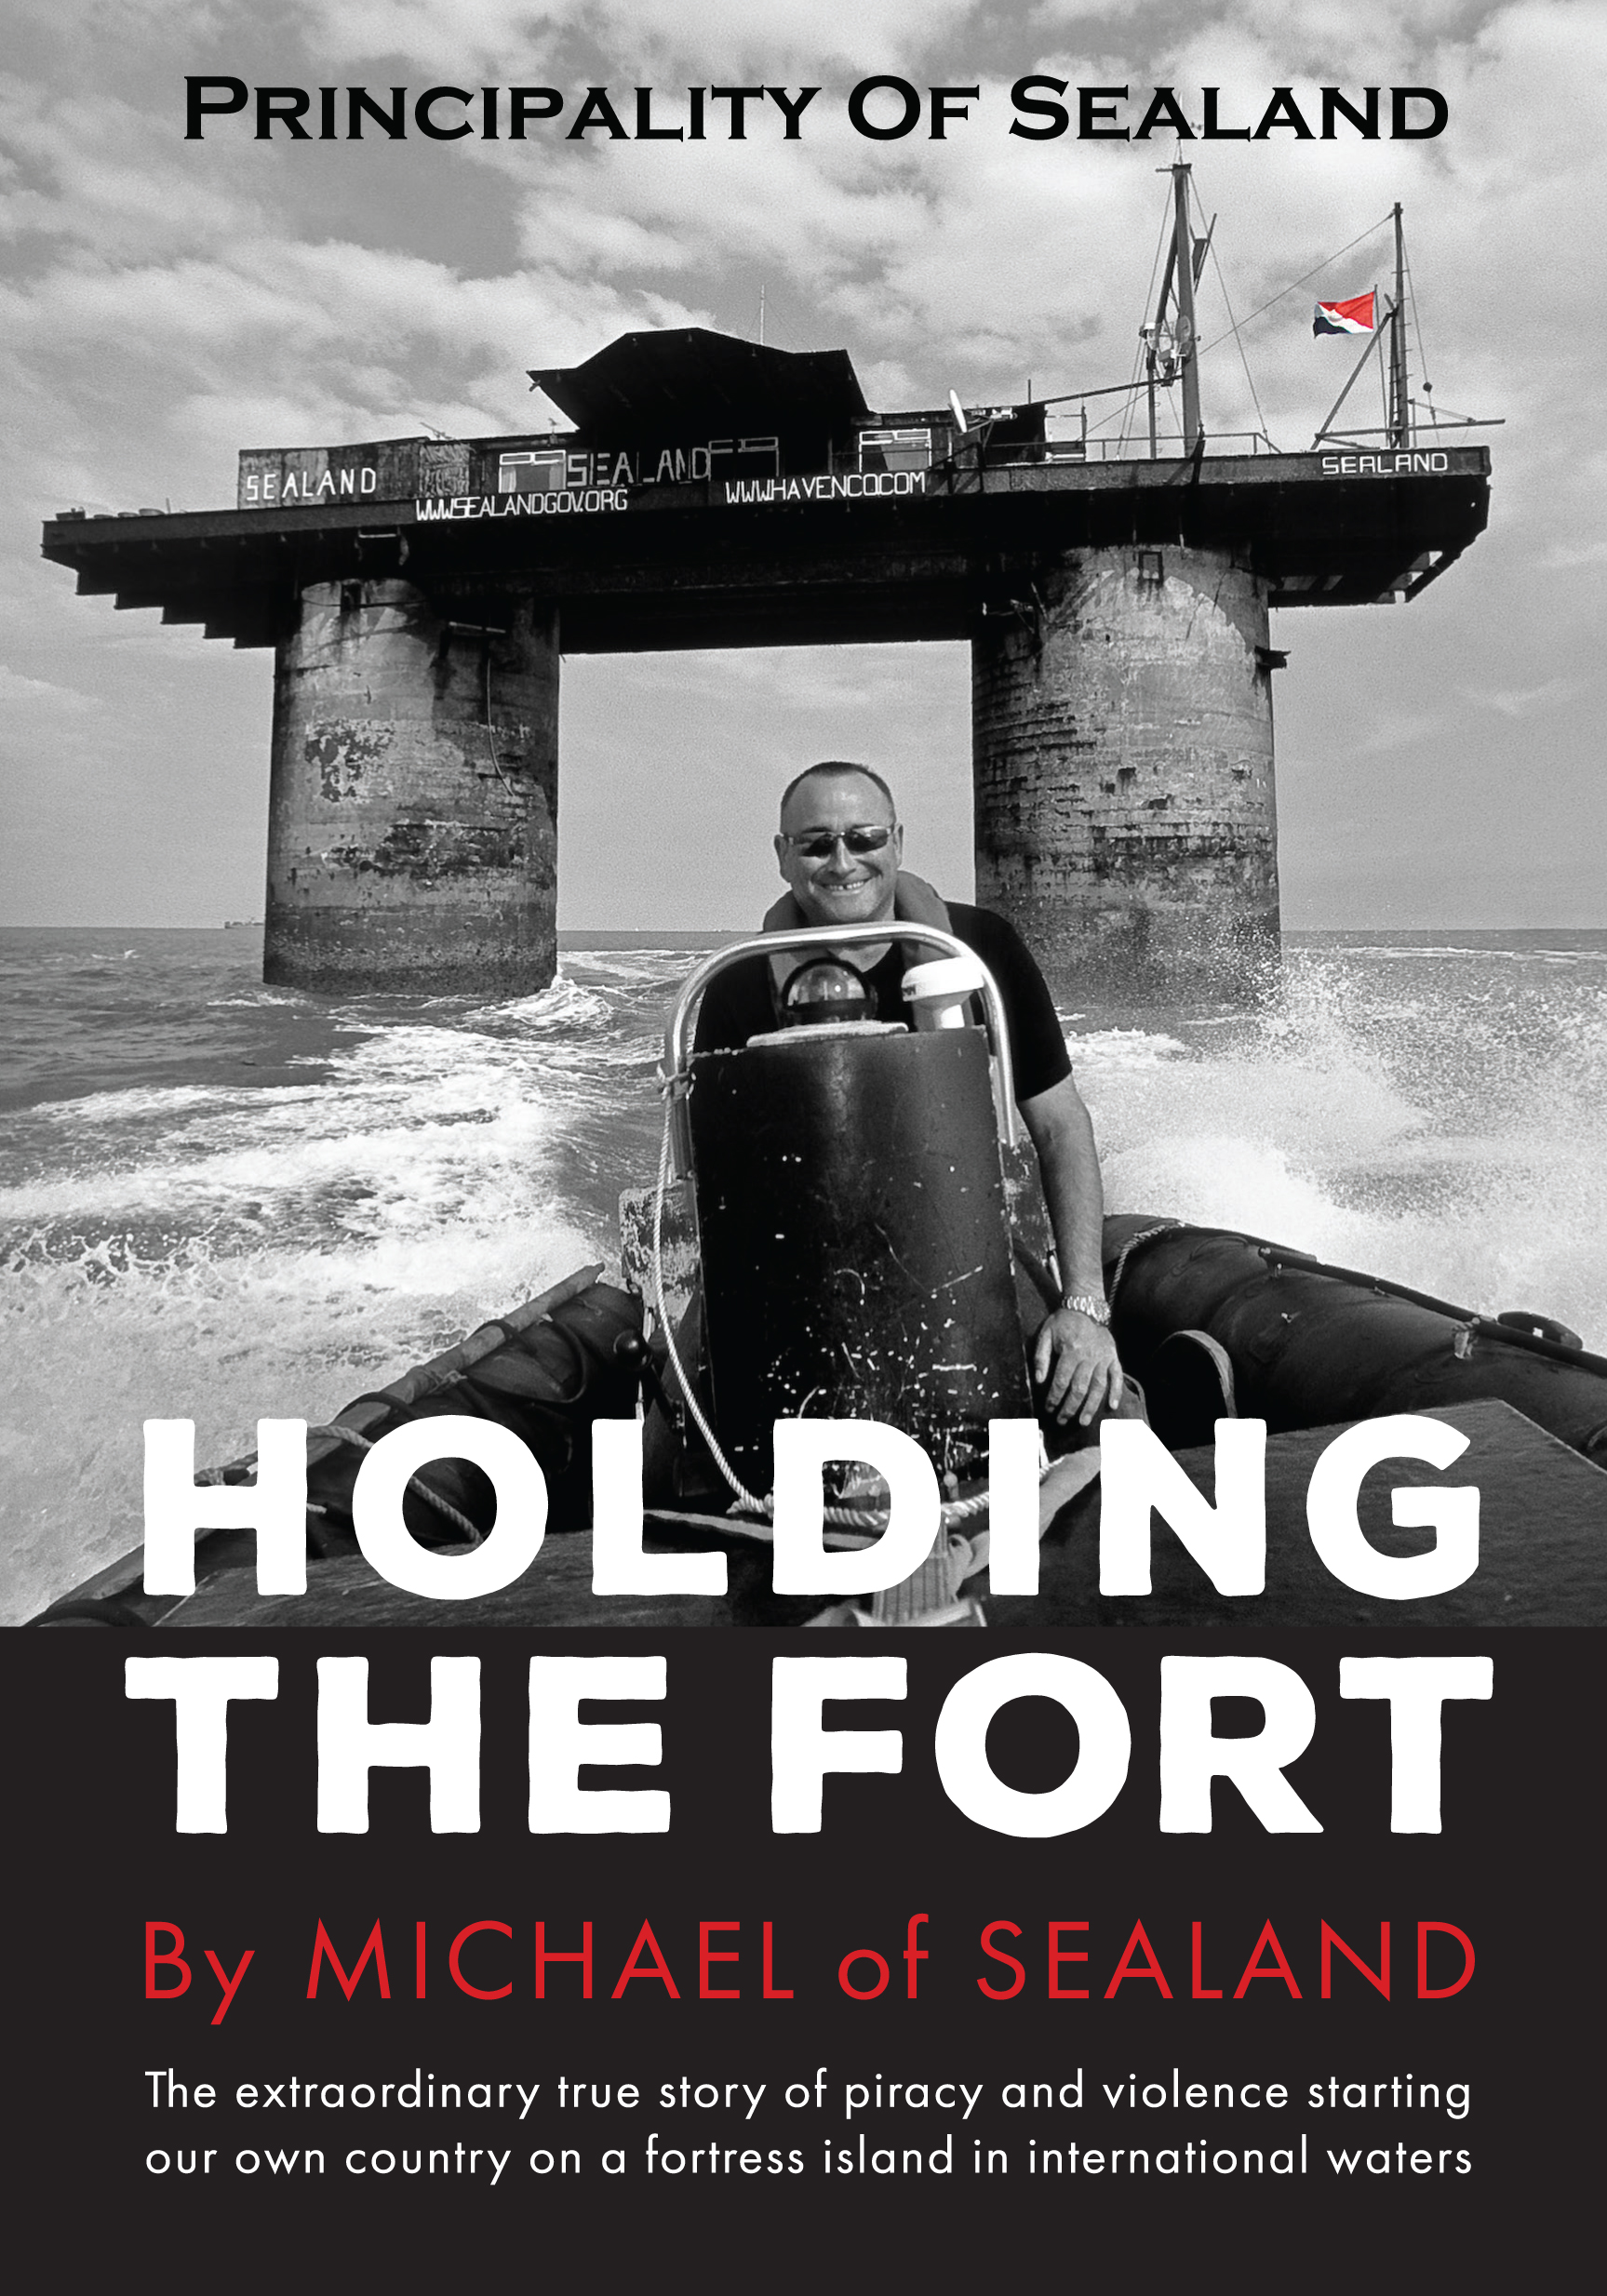 Principality of Sealand: Holding The Fort graphic